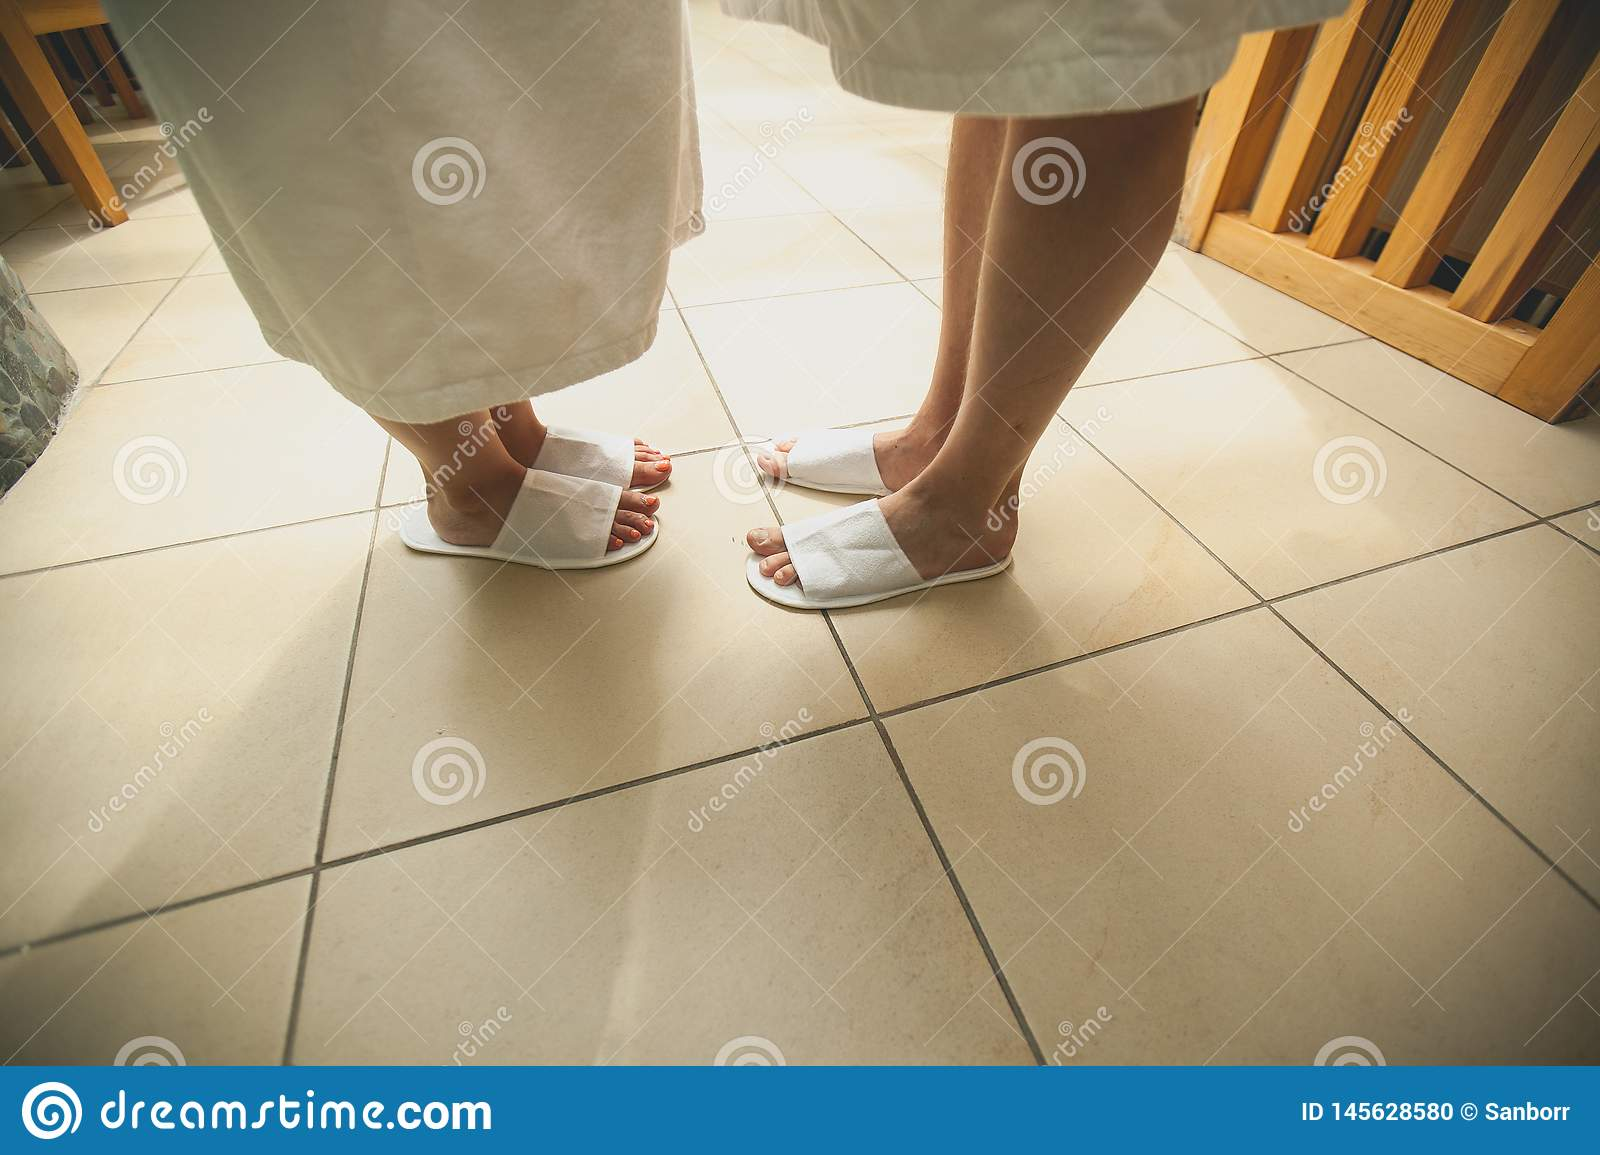 Legs of a man and a woman in swimming Slippers close-up. Young couple in bath robes and Slippers, standing on the tiled floor